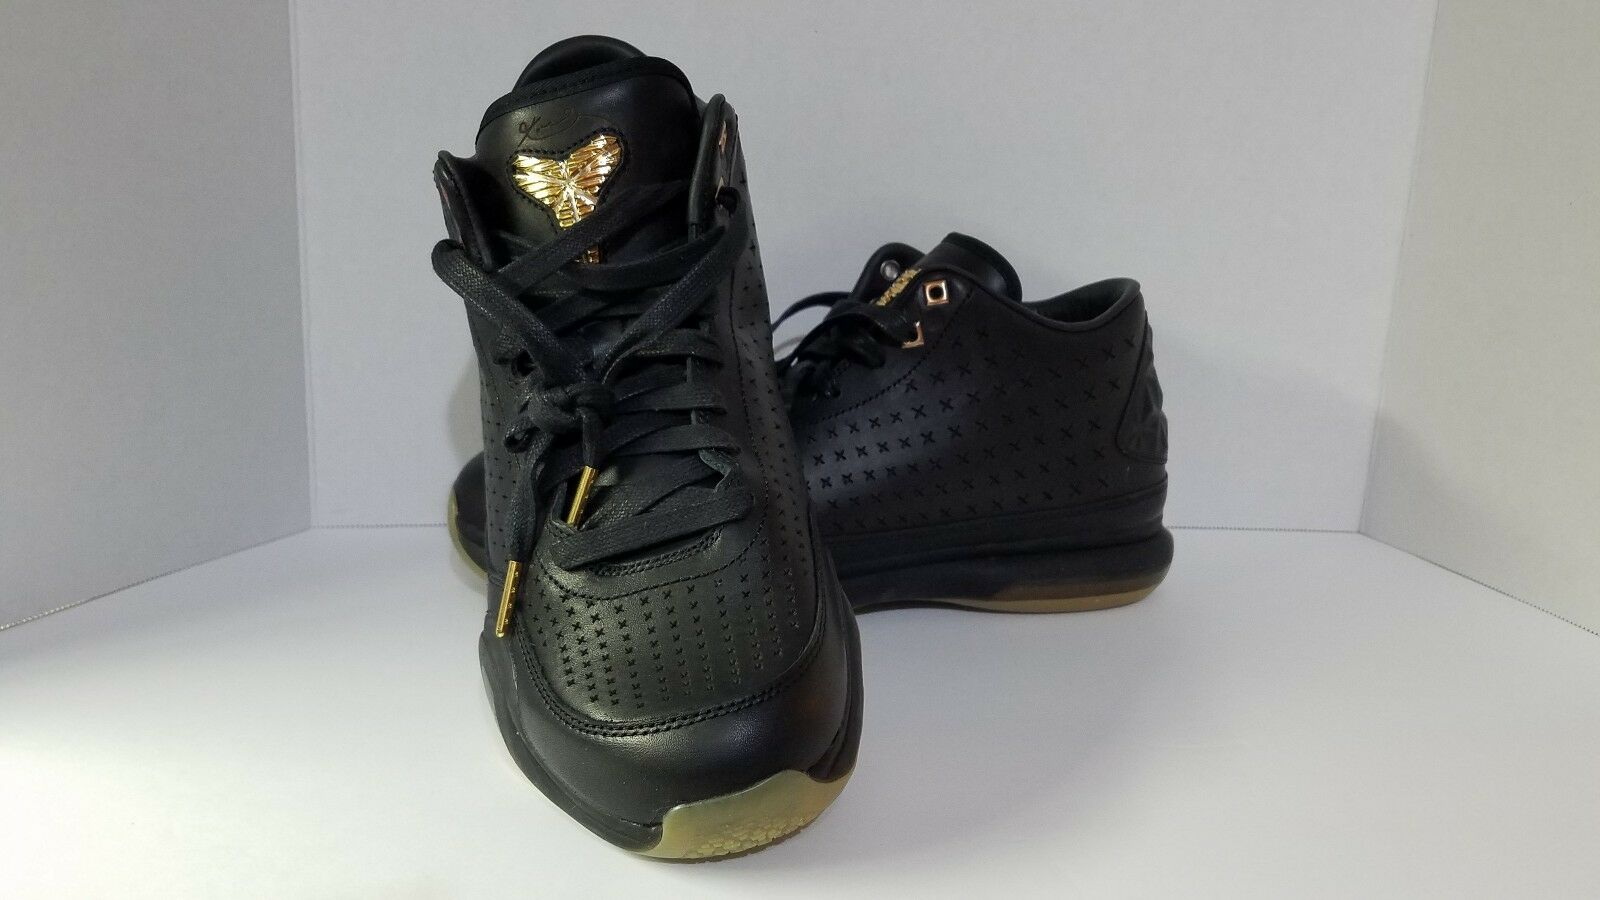 NEW in BOX  NIKE Kobe X Mid EXT SZ 10.5 Black Metallic gold Basketball shoes.